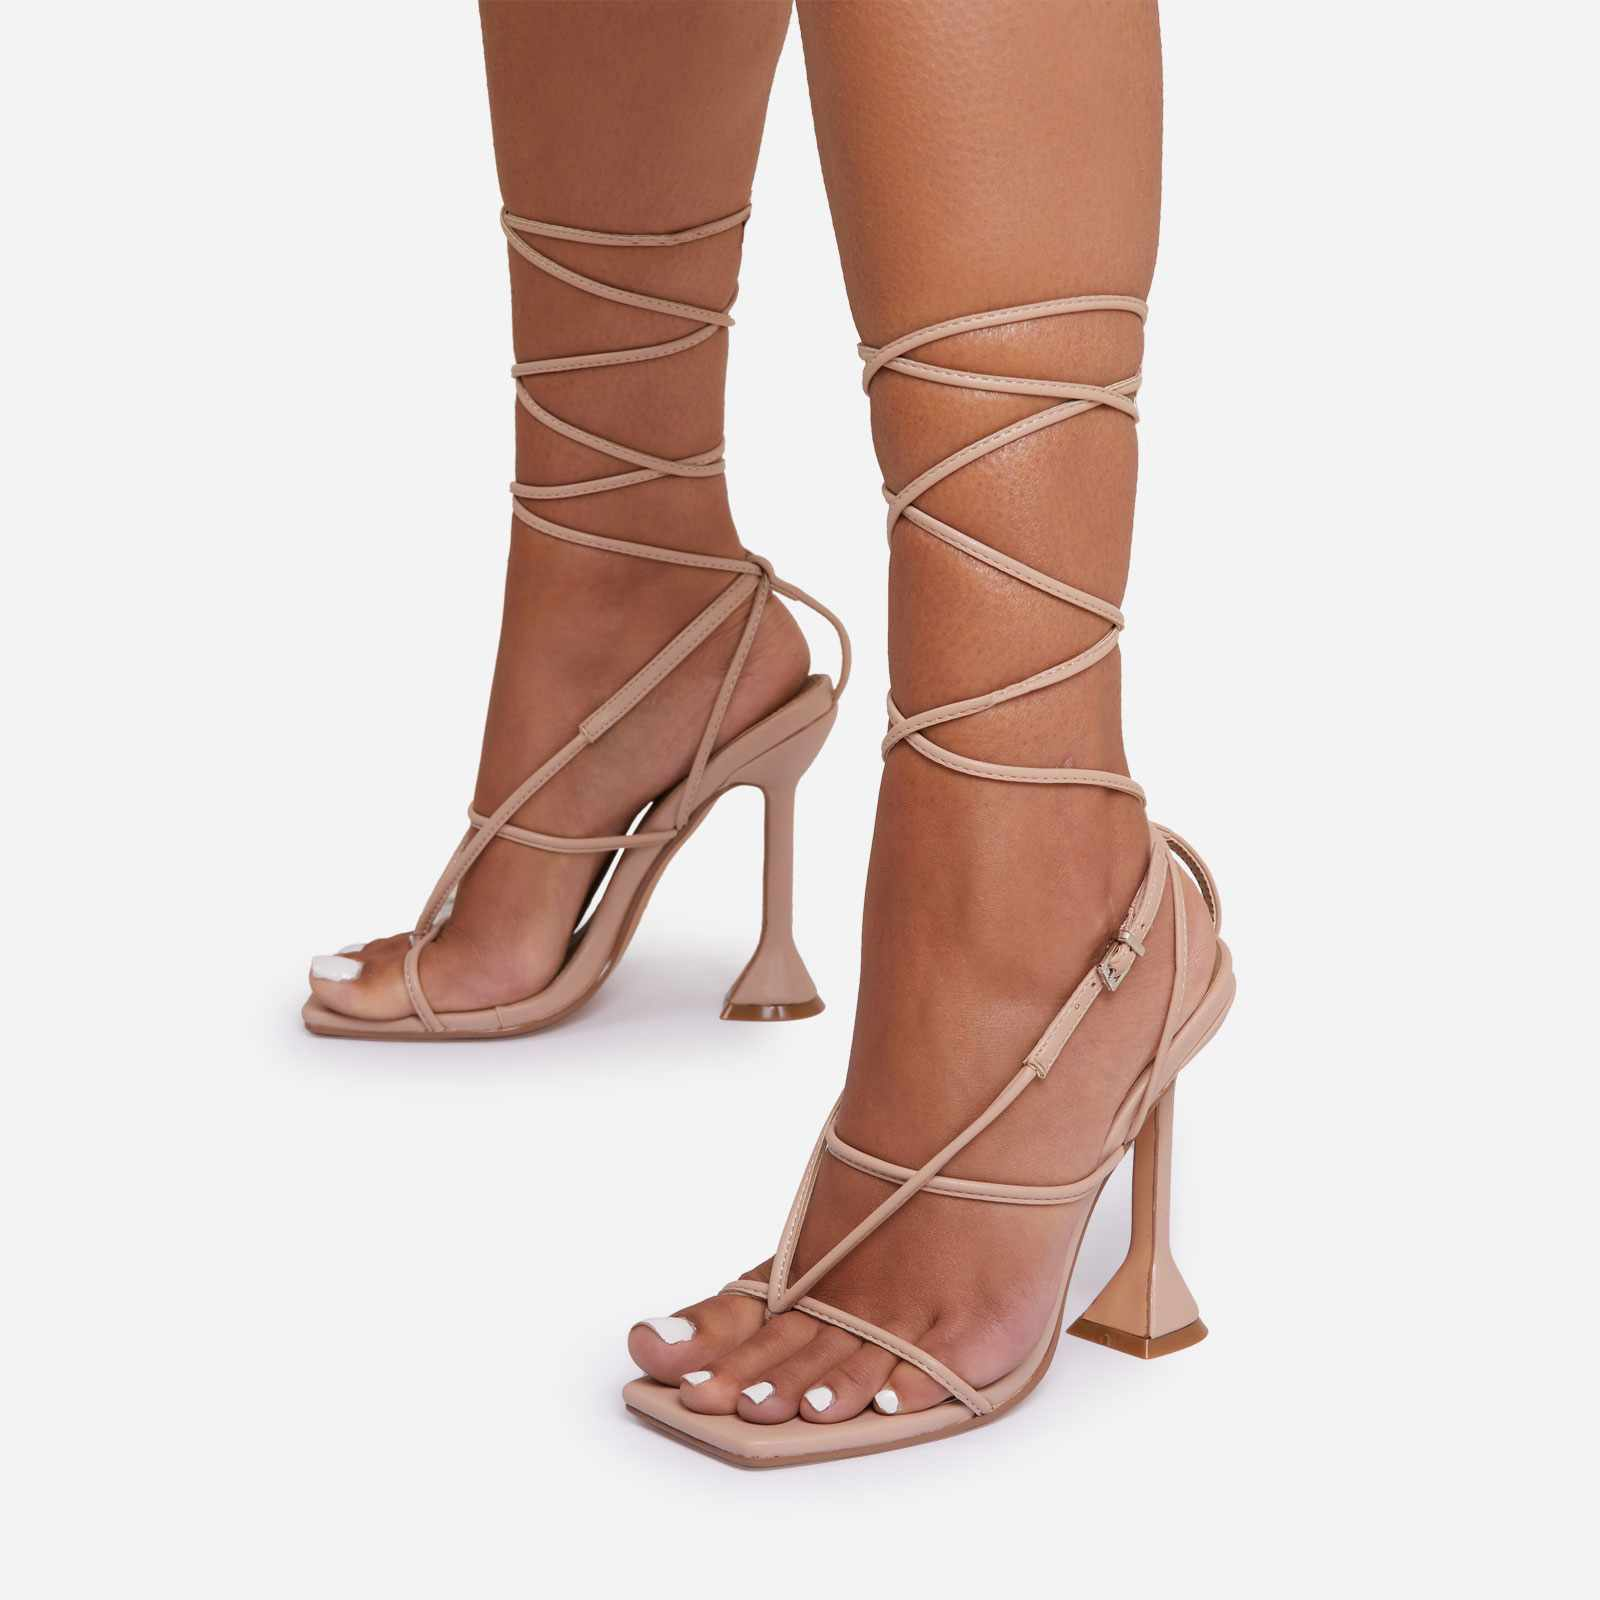 My-Angels Lace Up Square Toe Pyramid Heel In Nude Faux Leather